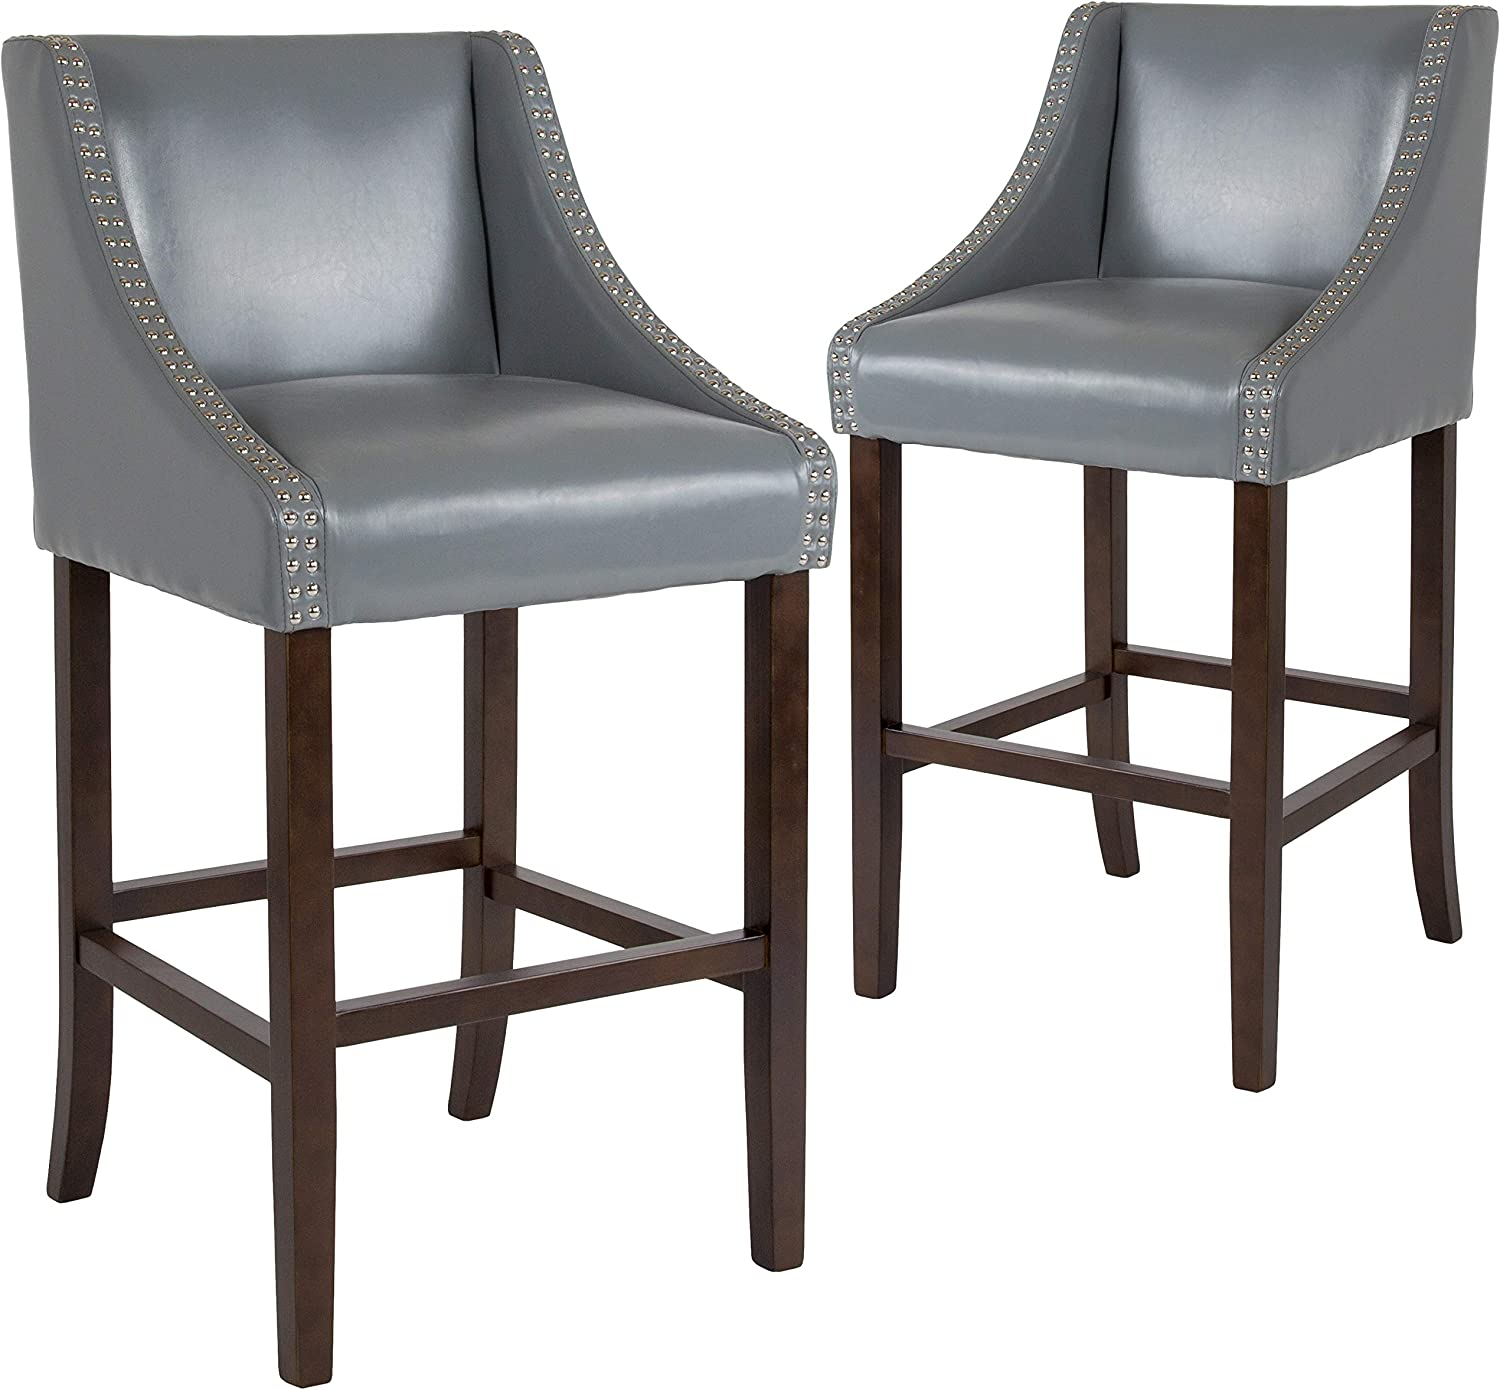 "Flash Furniture 2 Pk. Carmel Series 30"" High Transitional Walnut Barstool with Accent Nail Trim in Light Gray LeatherSoft"